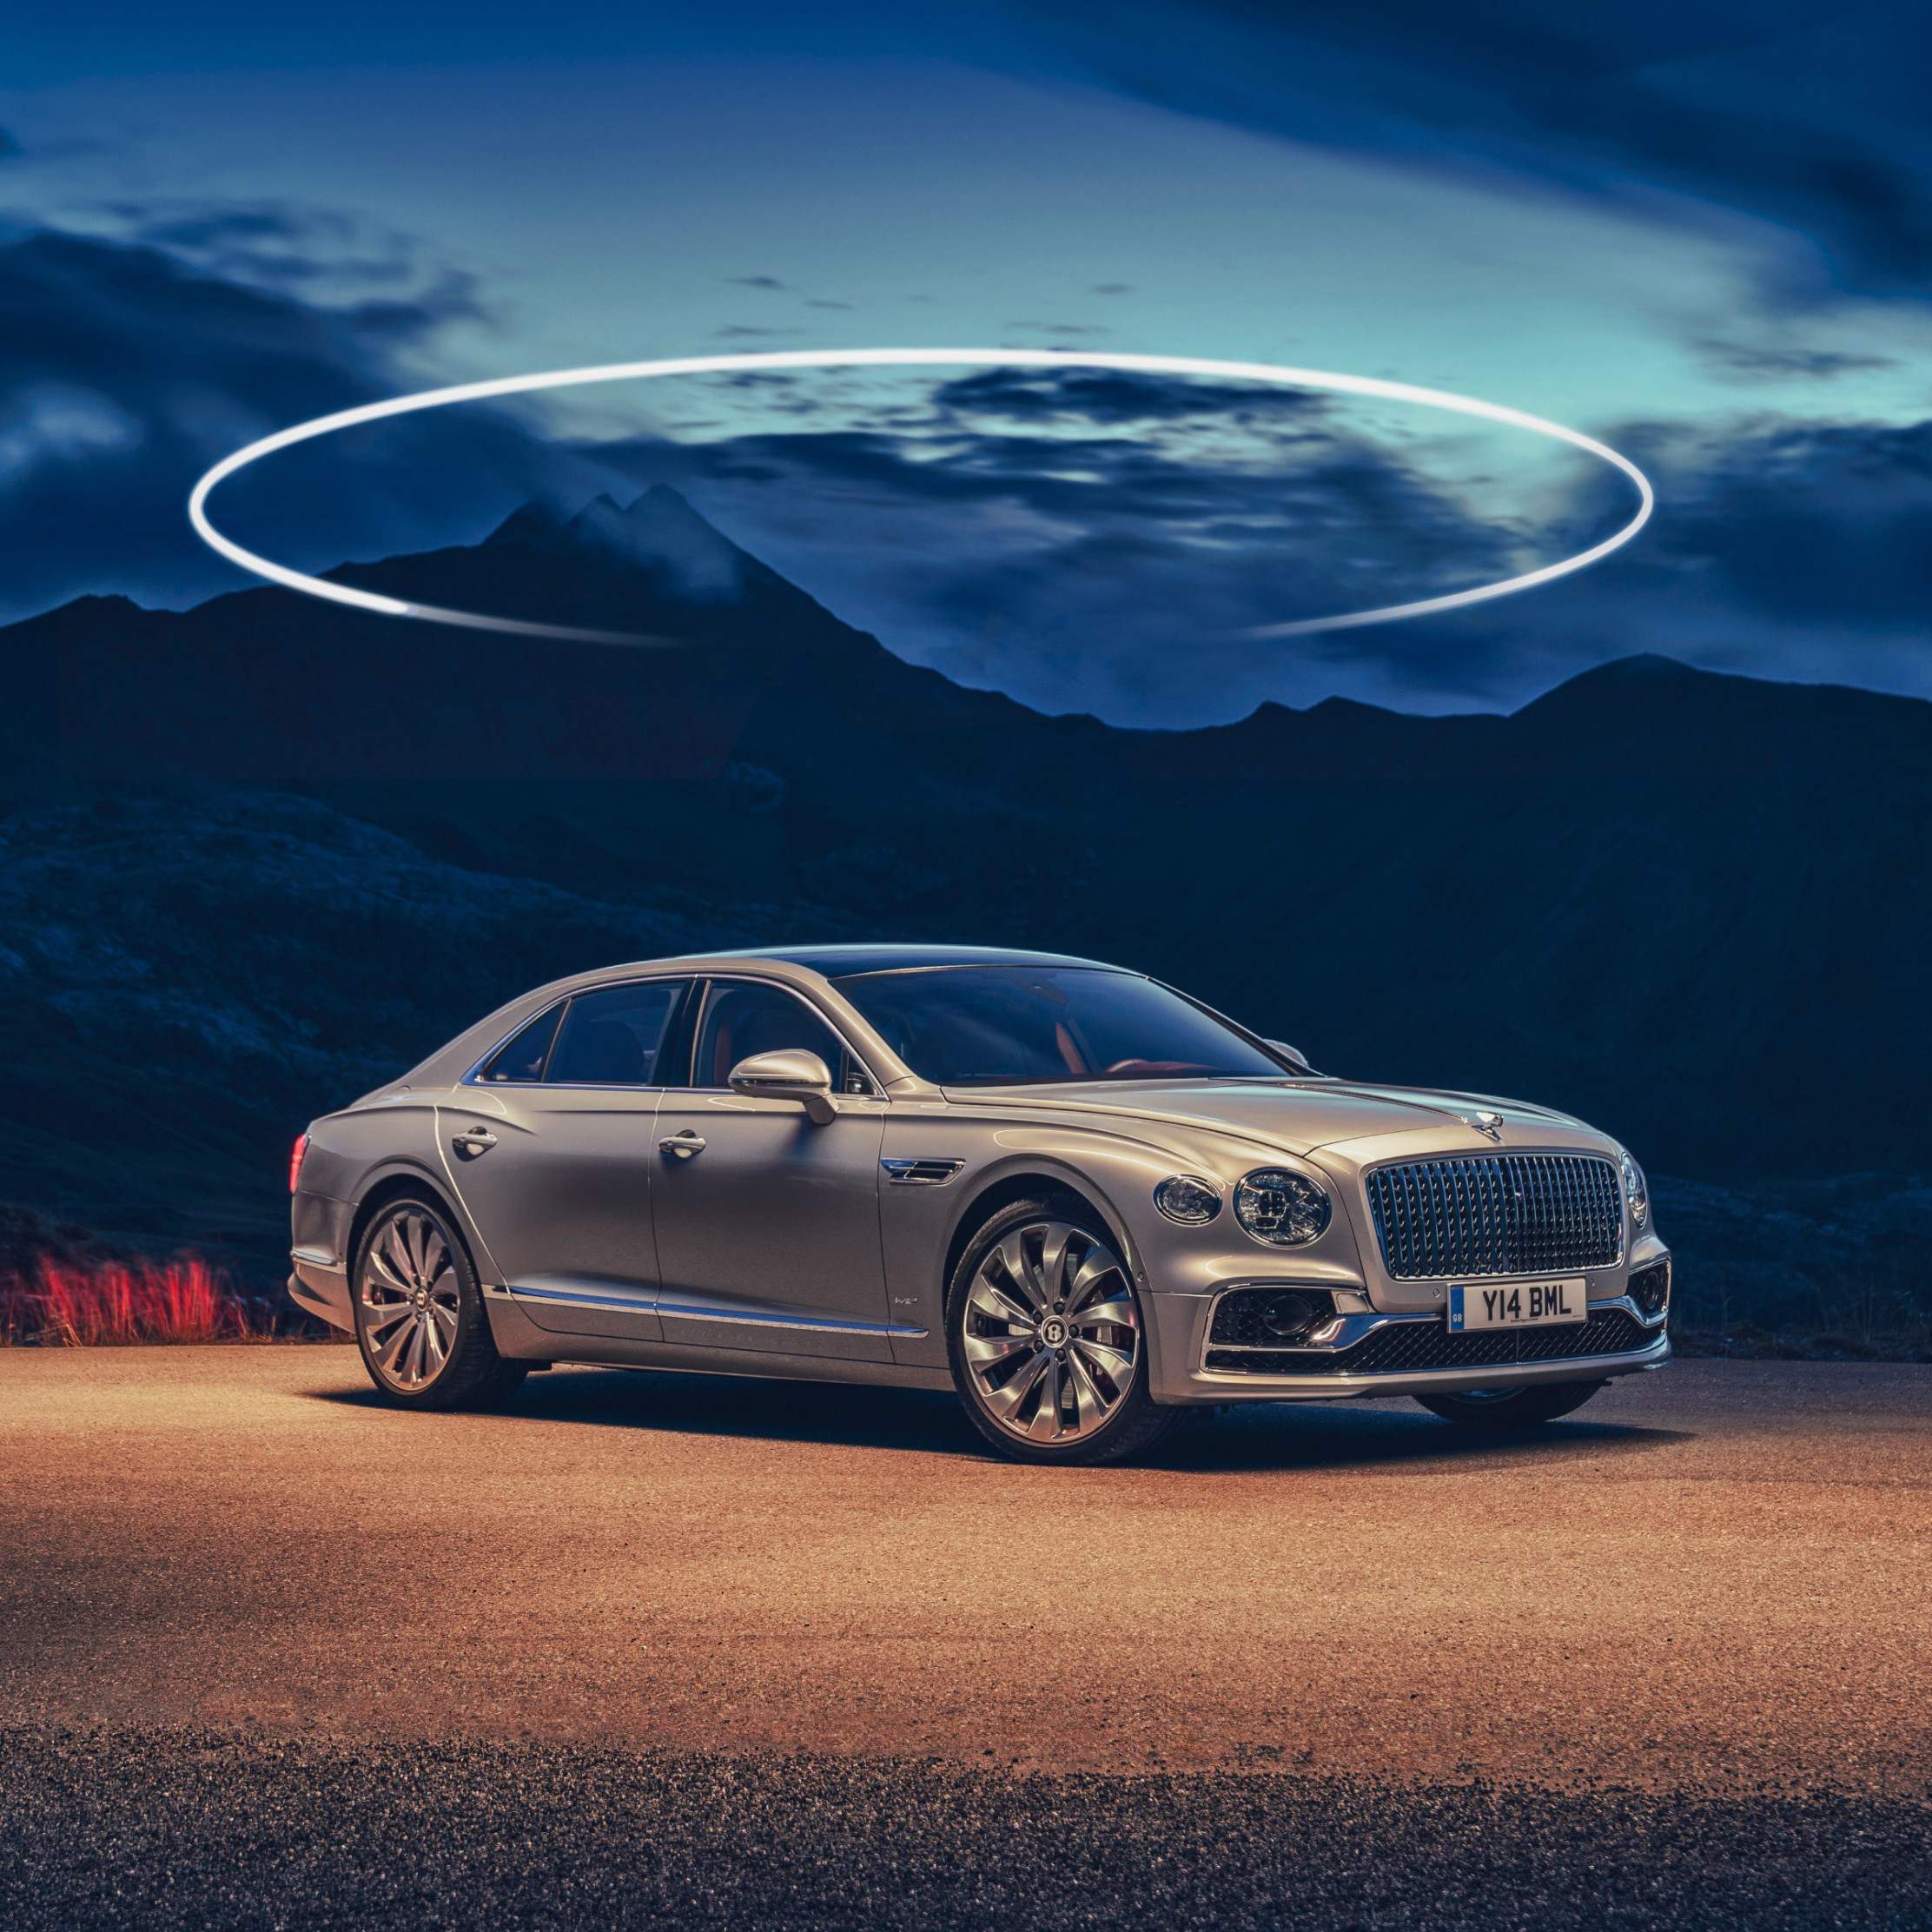 Bentley Flying Spur wallpaper 2224x2224